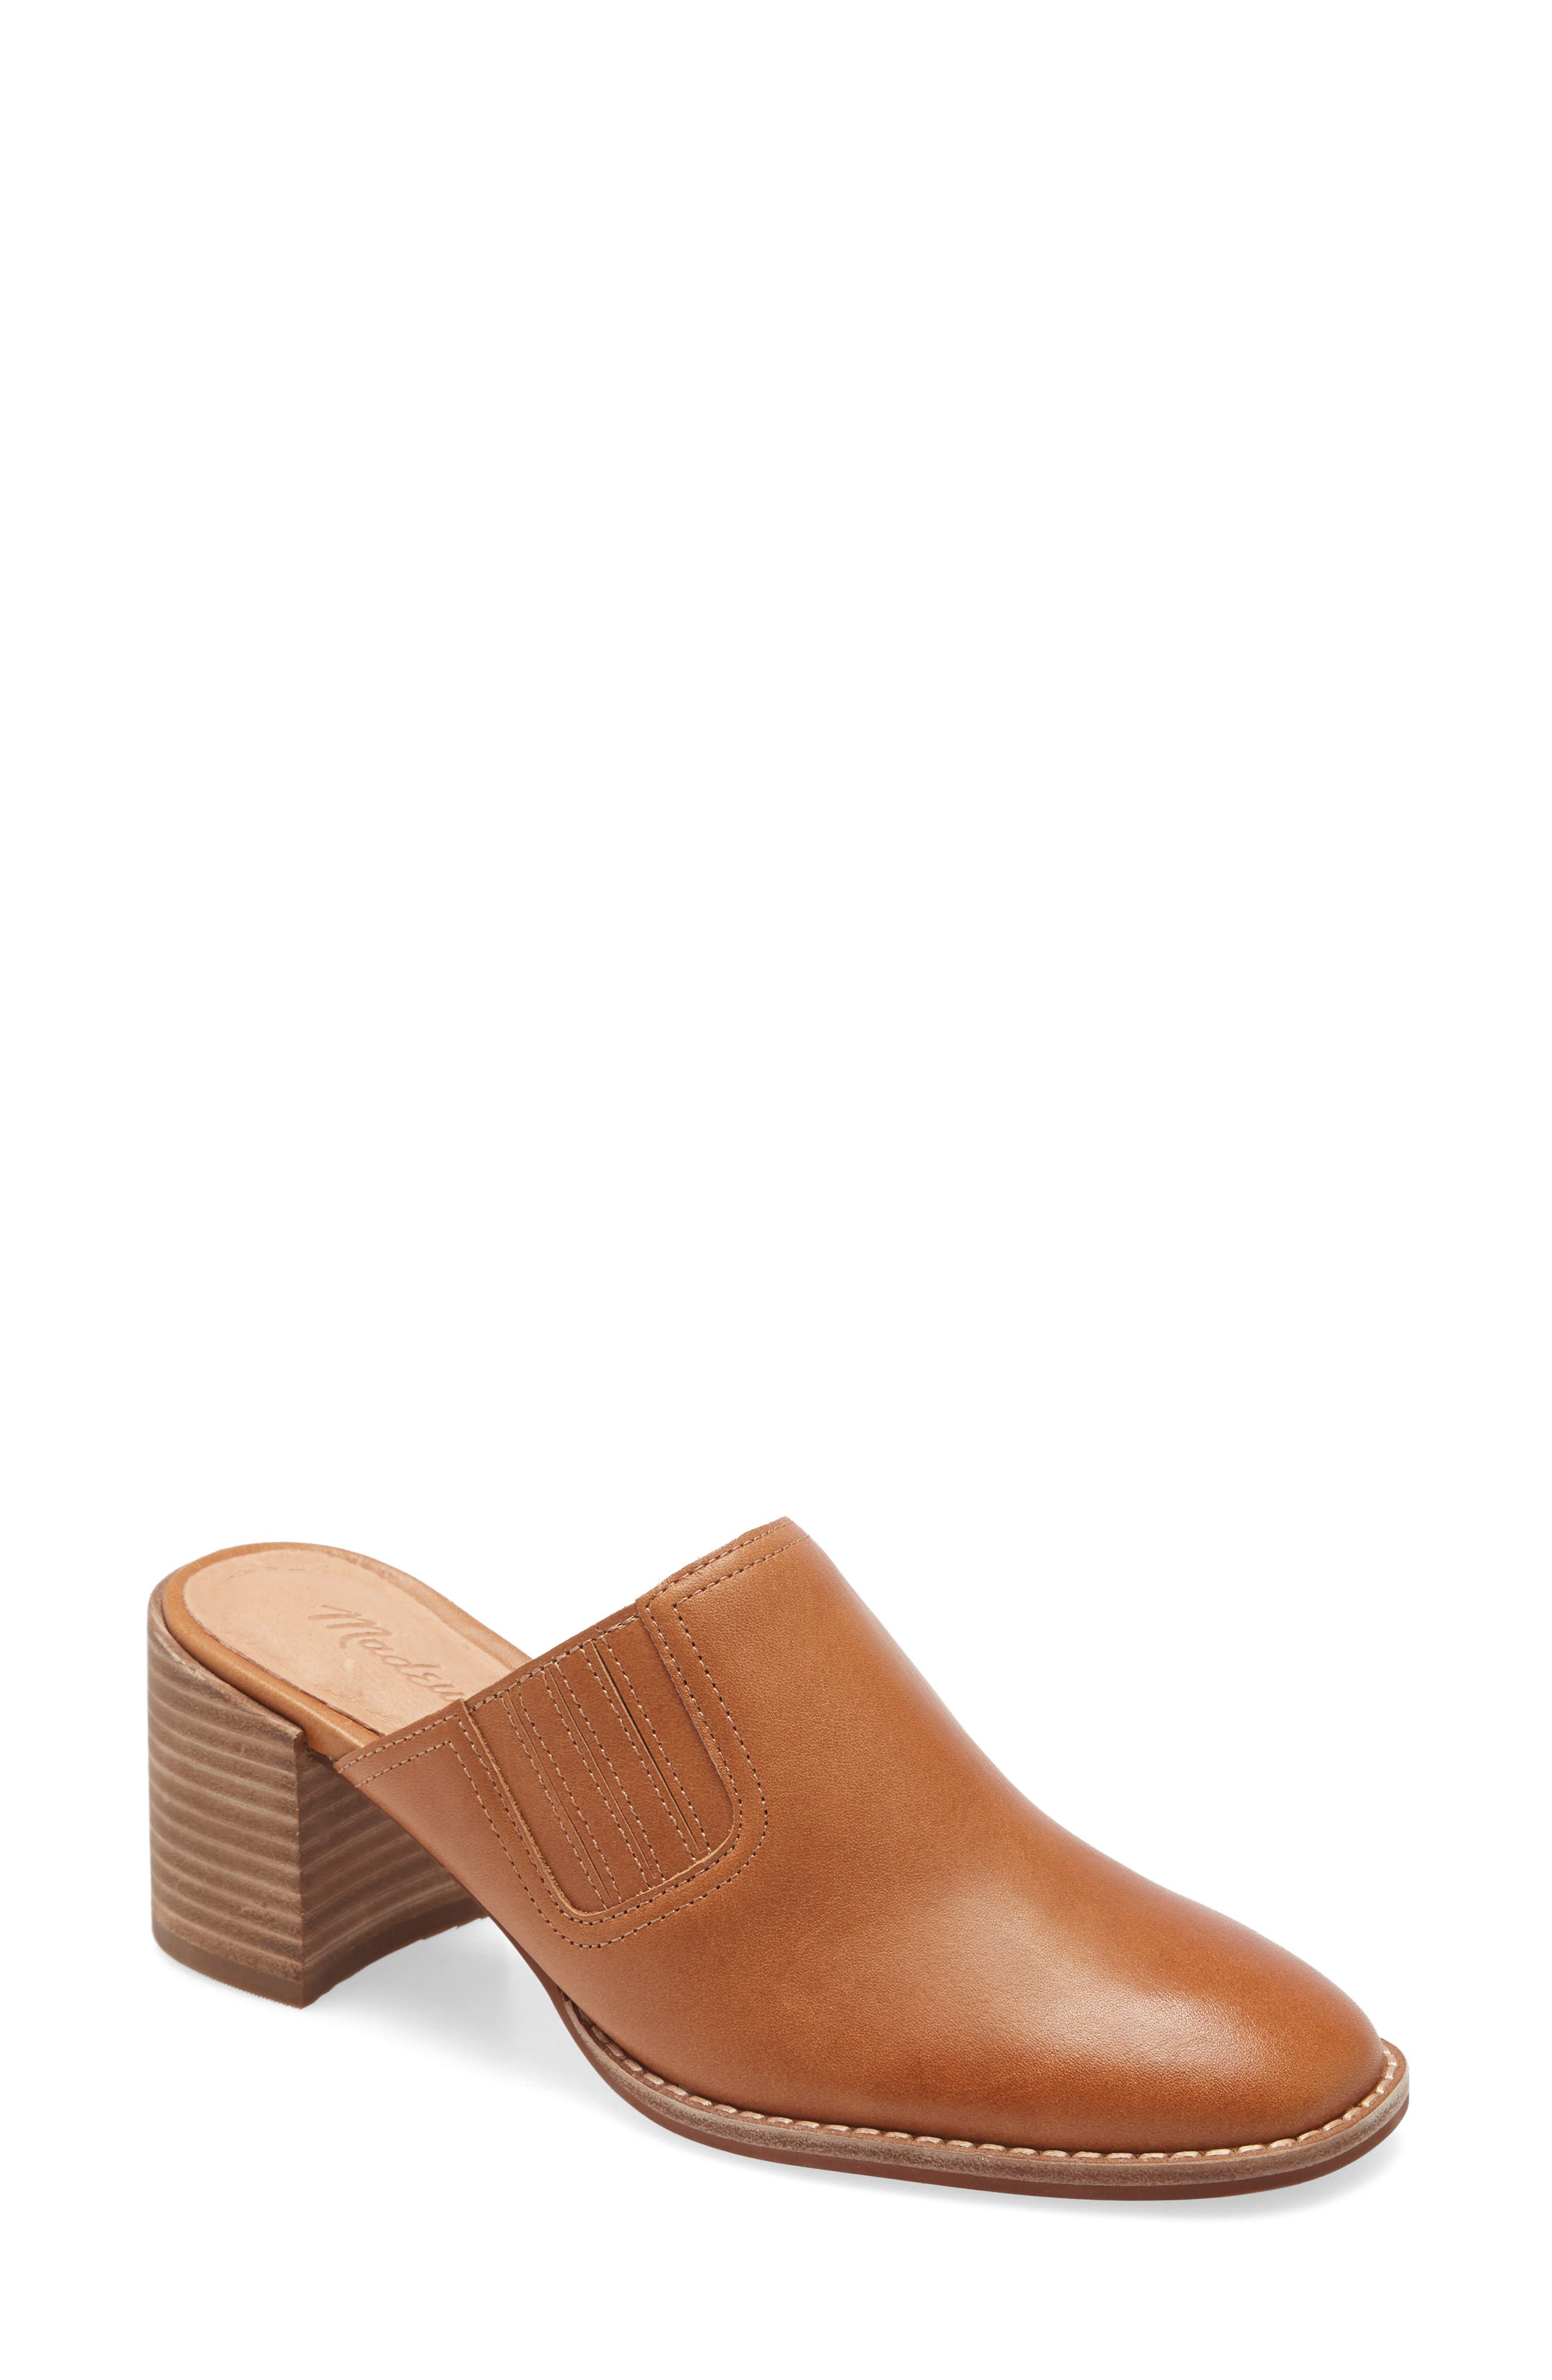 A modern take on a classic style, this leather mule has a slightly squared toe and chunky stacked heel with just enough height to keep your feet happy. Covered goring lends a slightly Western vibe and a perfectly snug fit. And, cushiness alert: Madewell\\\'s MWL Cloudlift Lite padding feels like walking on a-well, you know. Style Name: Madewell The Carey Mule (Women). Style Number: 5986469. Available in stores.